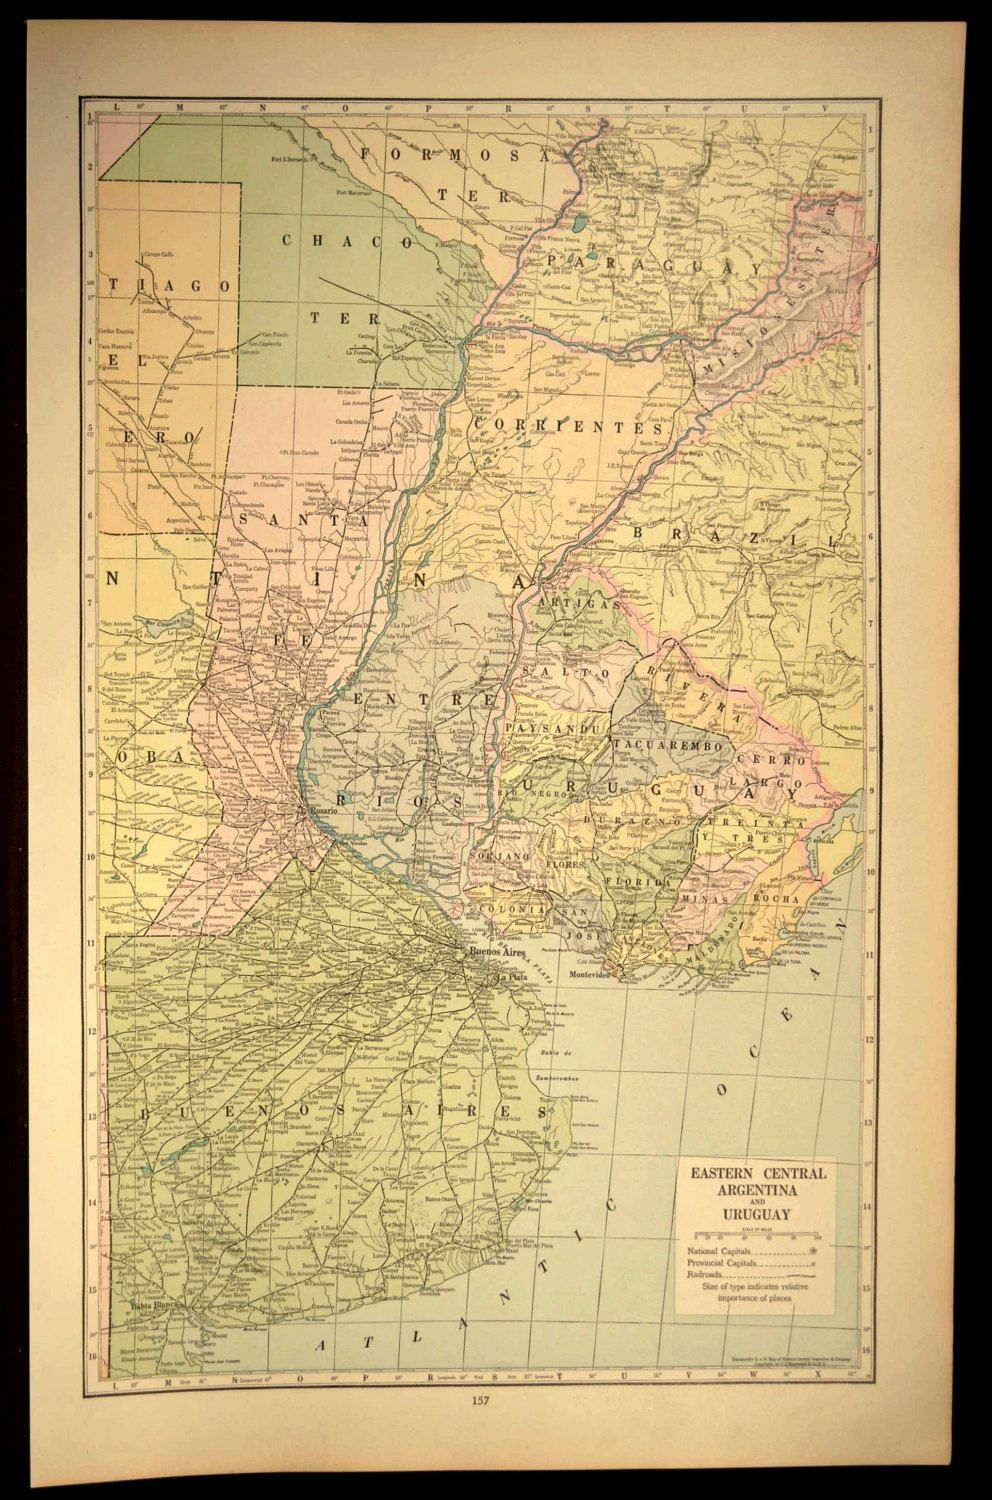 Buenos Aires Map Argentina Map Uruguay Paraná River Paraguay | Map on map of south america paraguay river, latin america uruguay river, map of south america orinoco river, map of rivers and rio grande parana, map of south america amazon river, map of south america uruguay river,